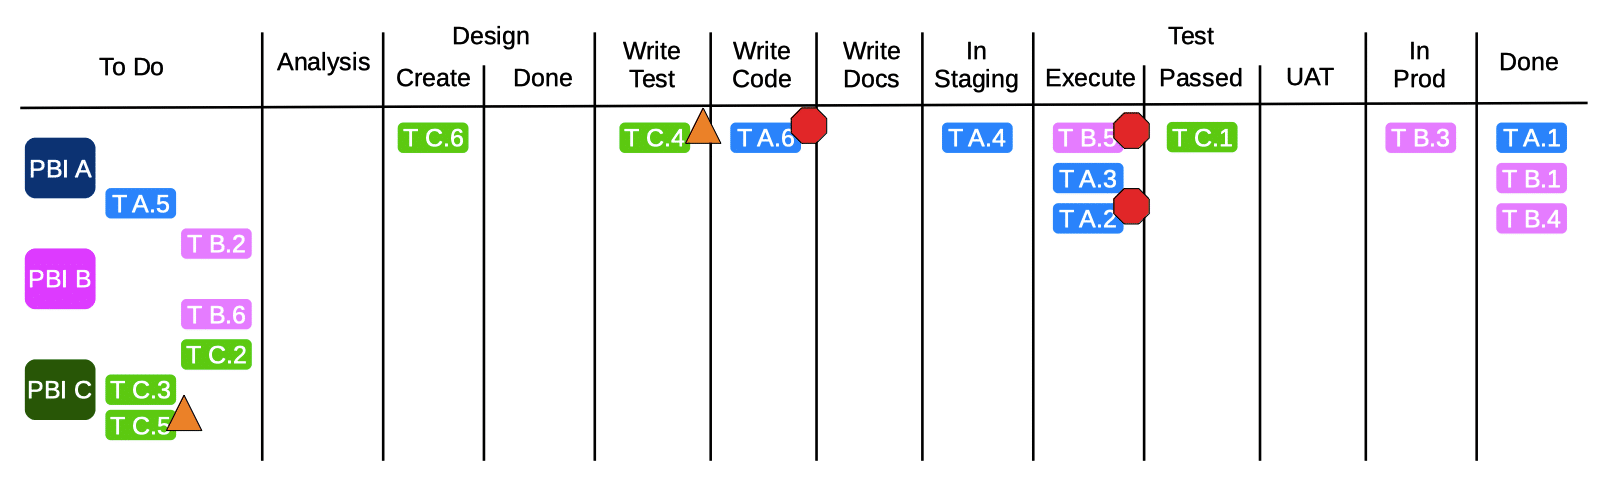 Modified Scrum Board with Colourized Work Items and Symbology